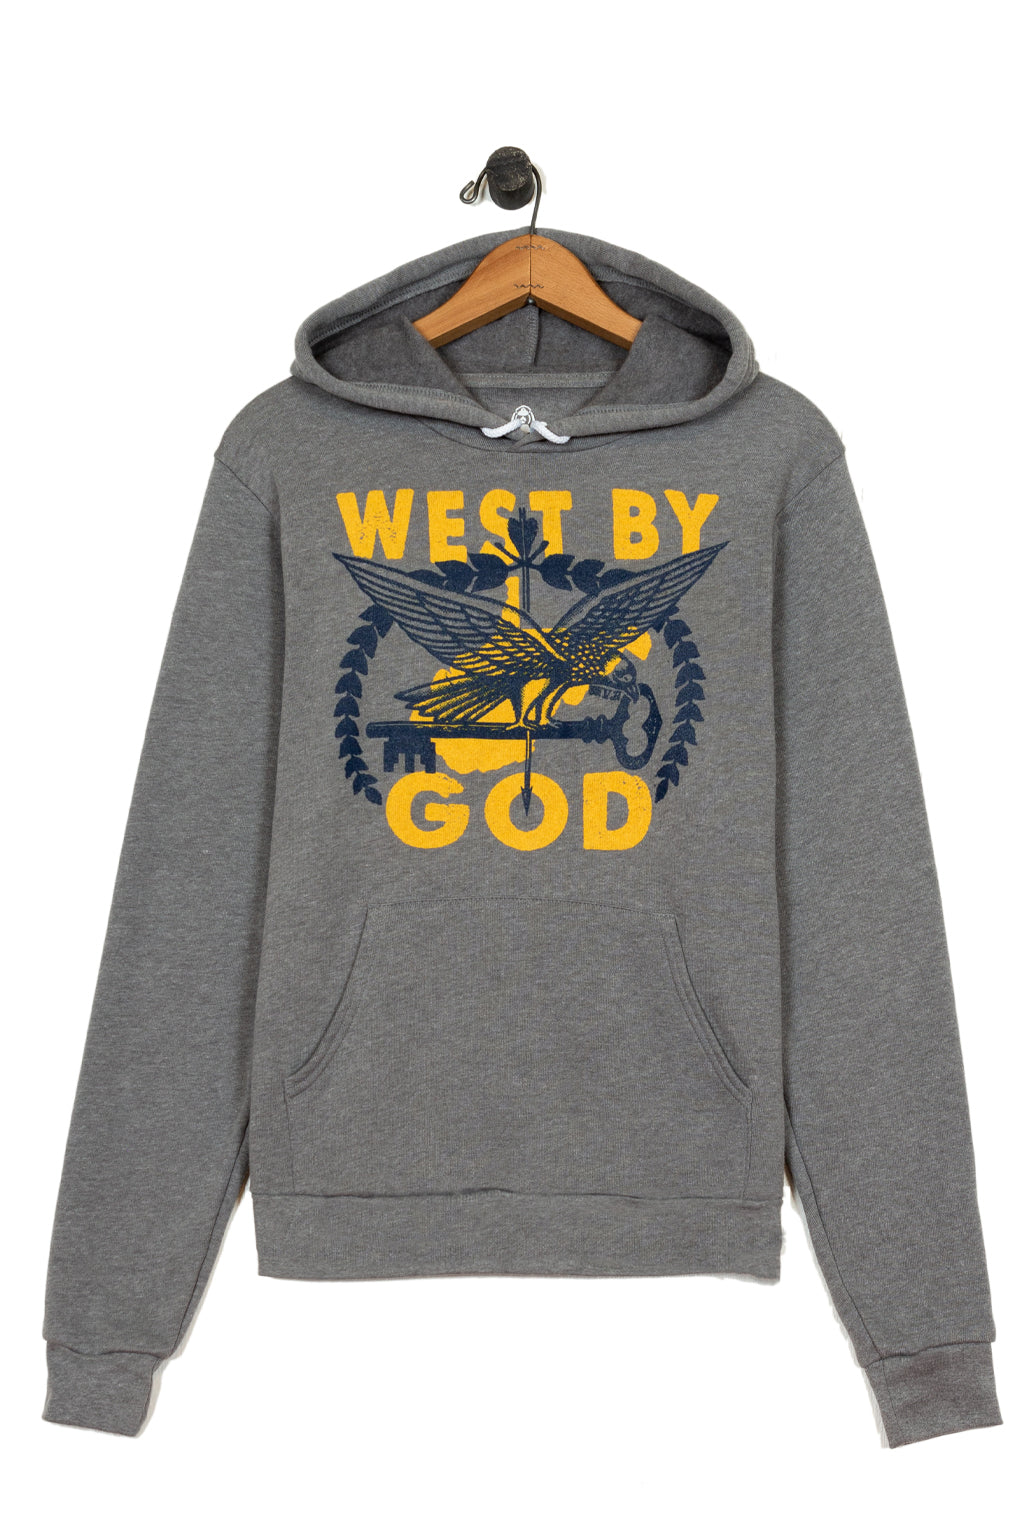 west by god pullover hoodie